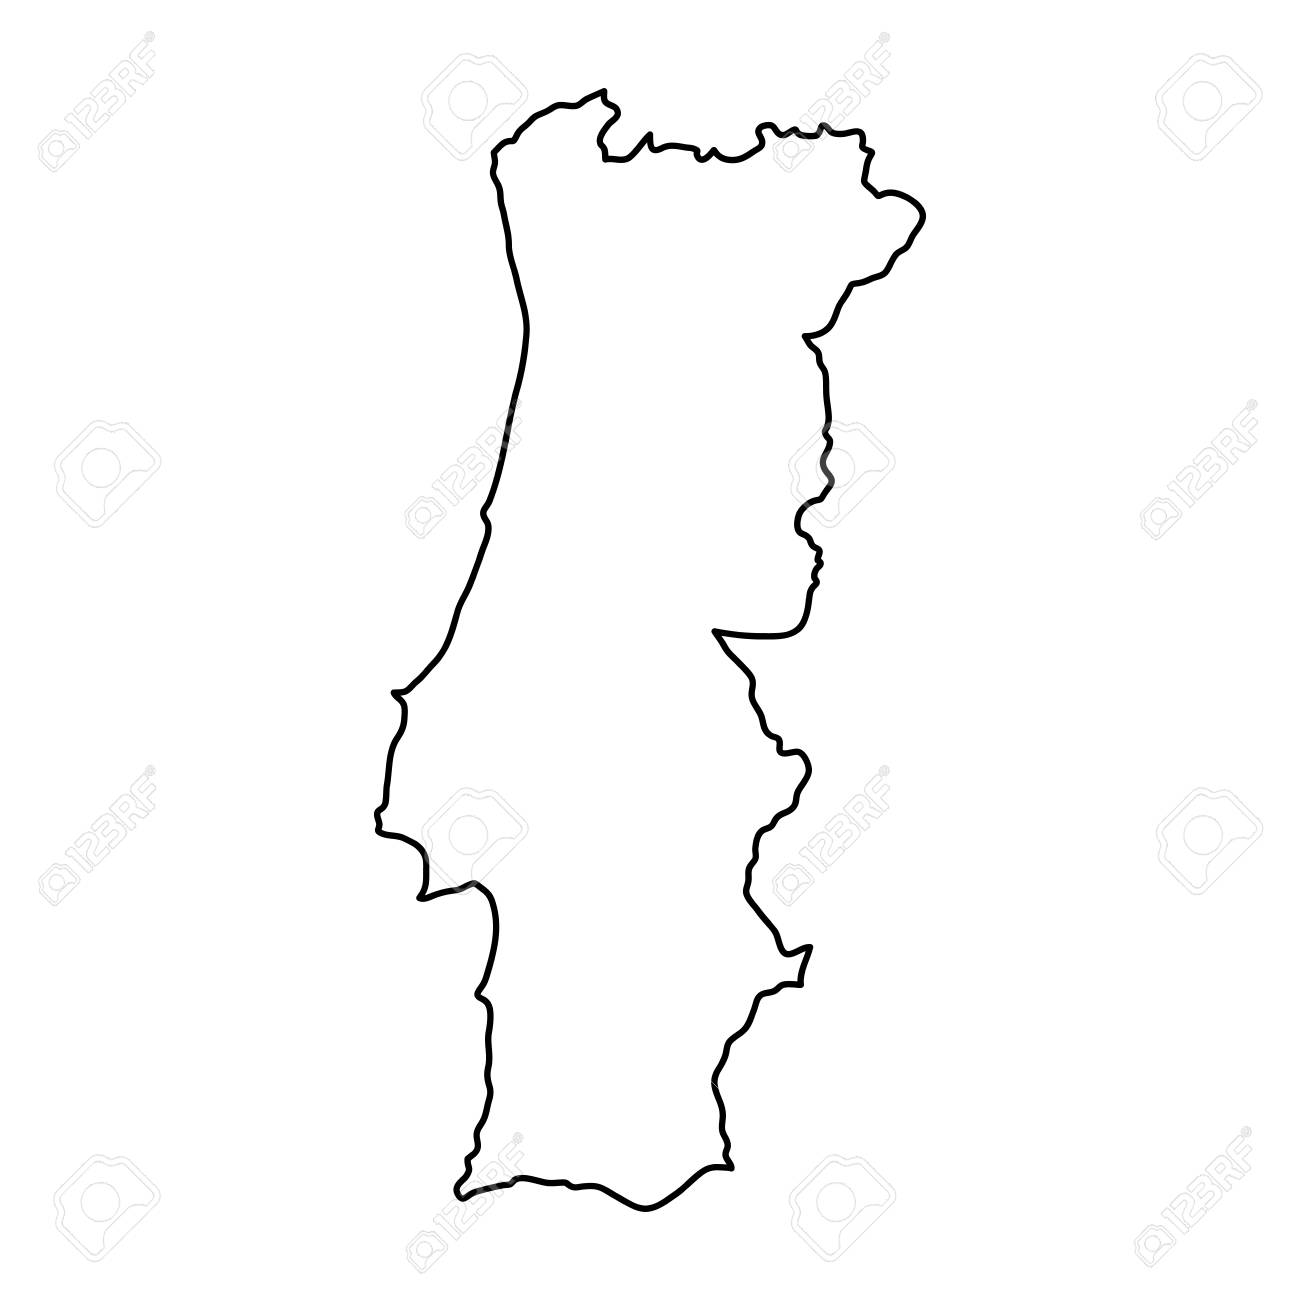 portugal mapa vector Portugal Map Icon. Royalty Free Cliparts, Vectors, And Stock  portugal mapa vector